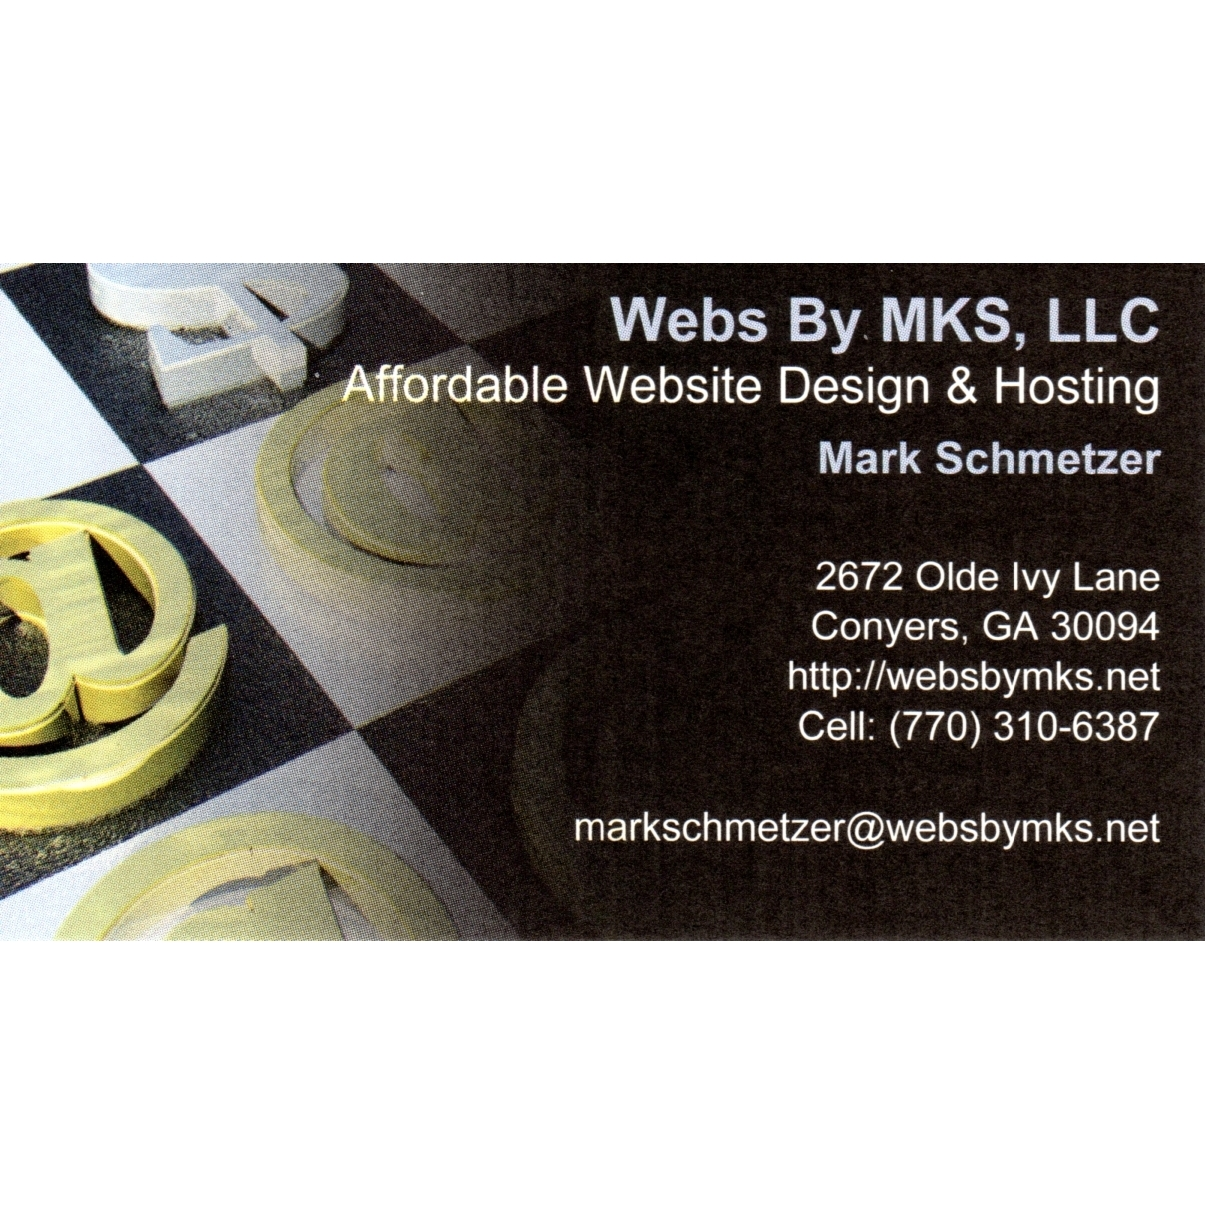 Webs by MKS, LLC image 1